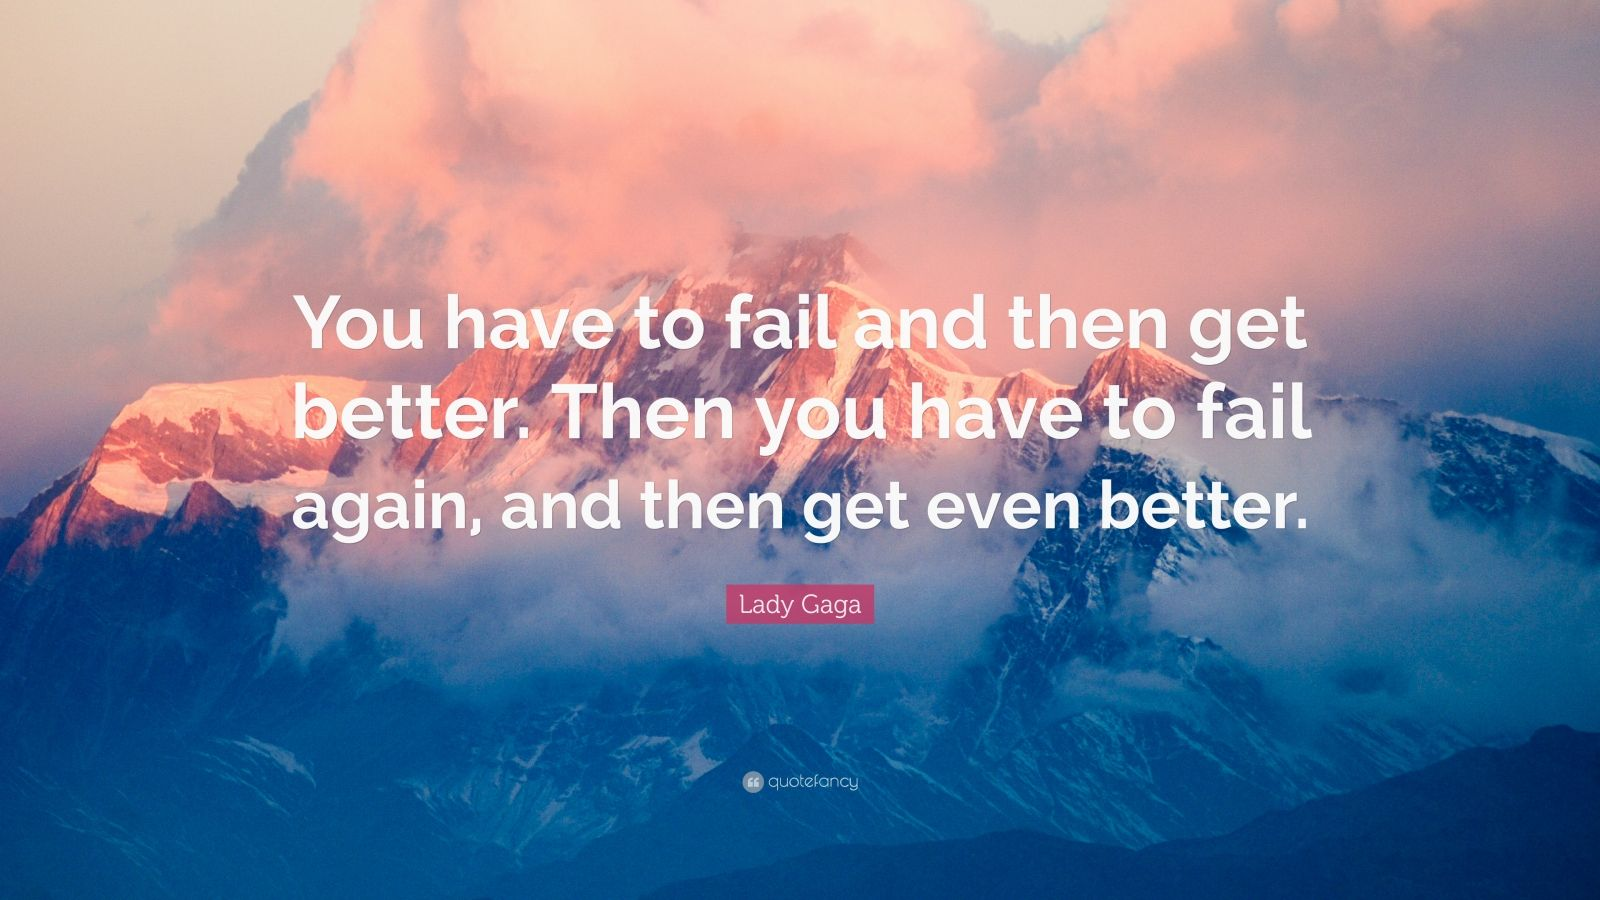 """Lady Gaga Quote: """"You have to fail and then get better. Then you have to fail again, and then get even better."""""""